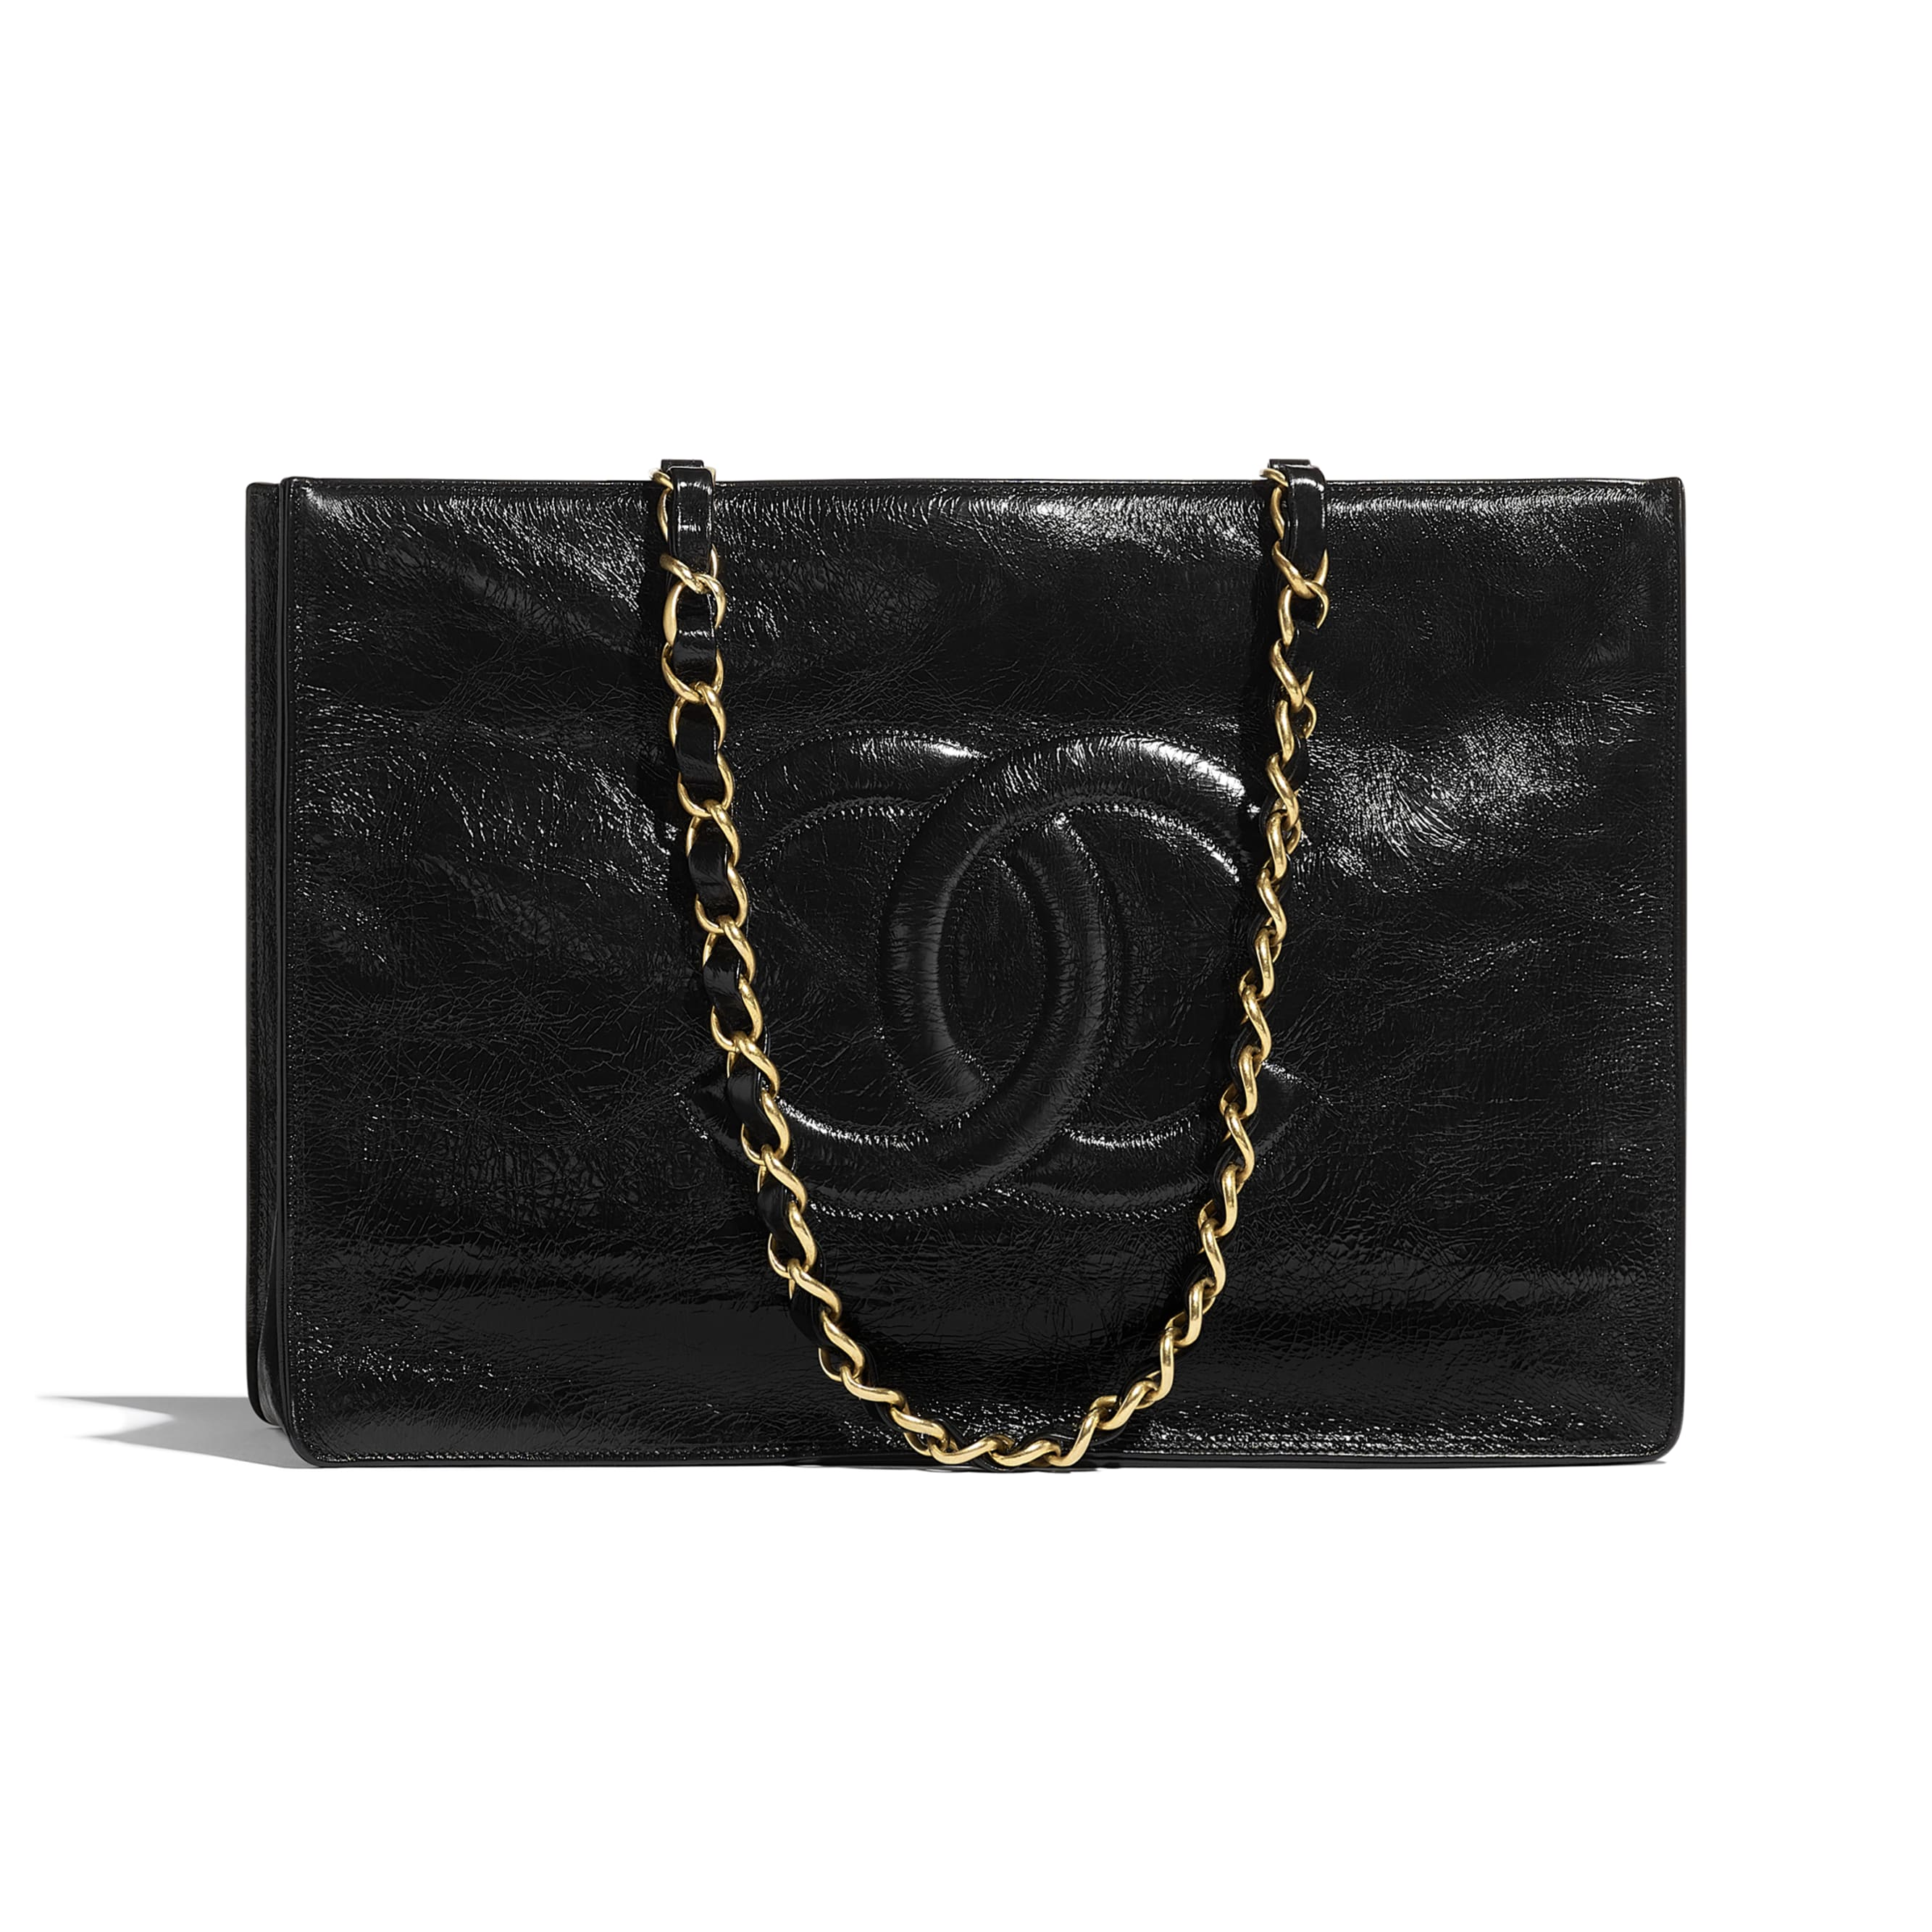 Shopping Bag - Black - Shiny Aged Calfskin & Gold-Tone Metal - CHANEL - Default view - see standard sized version